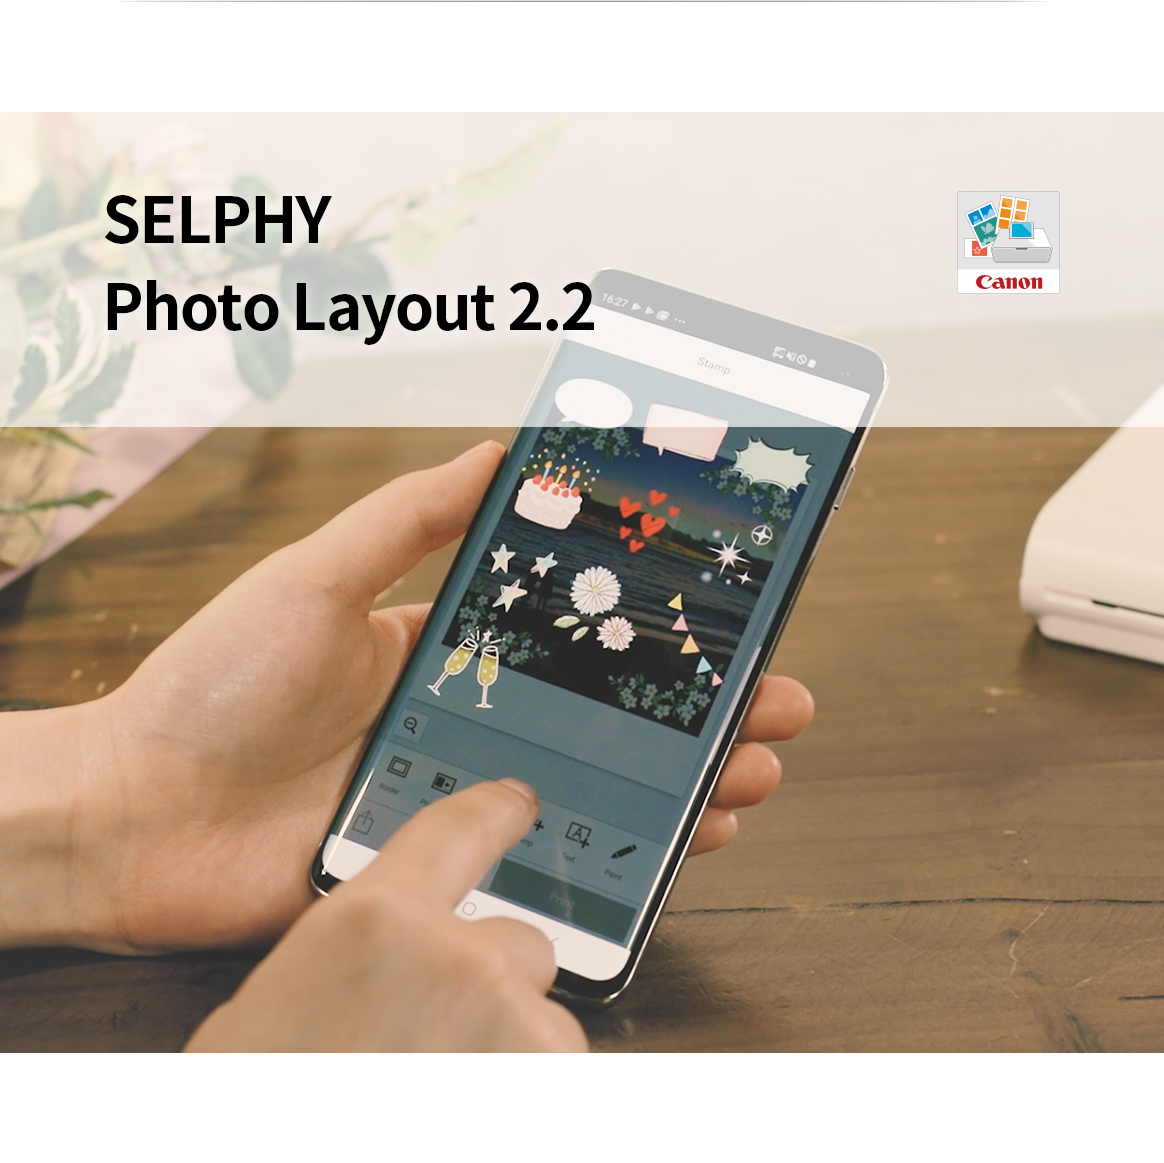 SELPHY Photo Layout 2.2